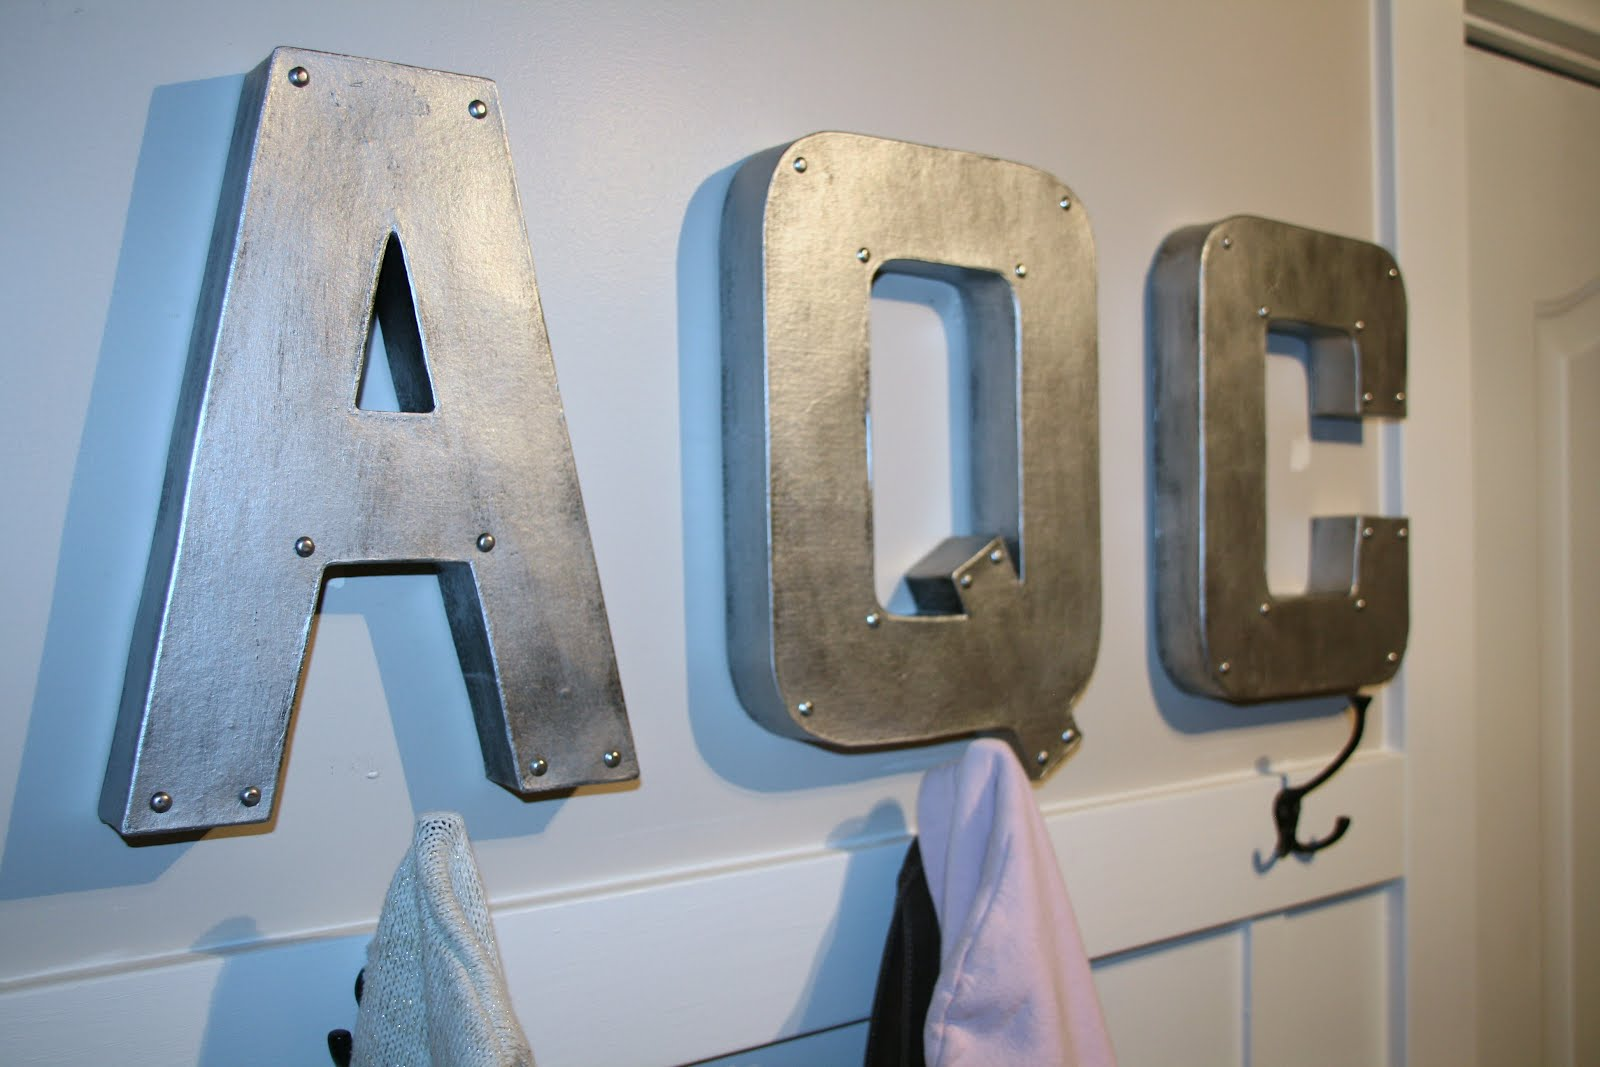 Large Metal Letters For Wall Up Spending About 30 For Five 12 Inch Letters The Zinc Letters